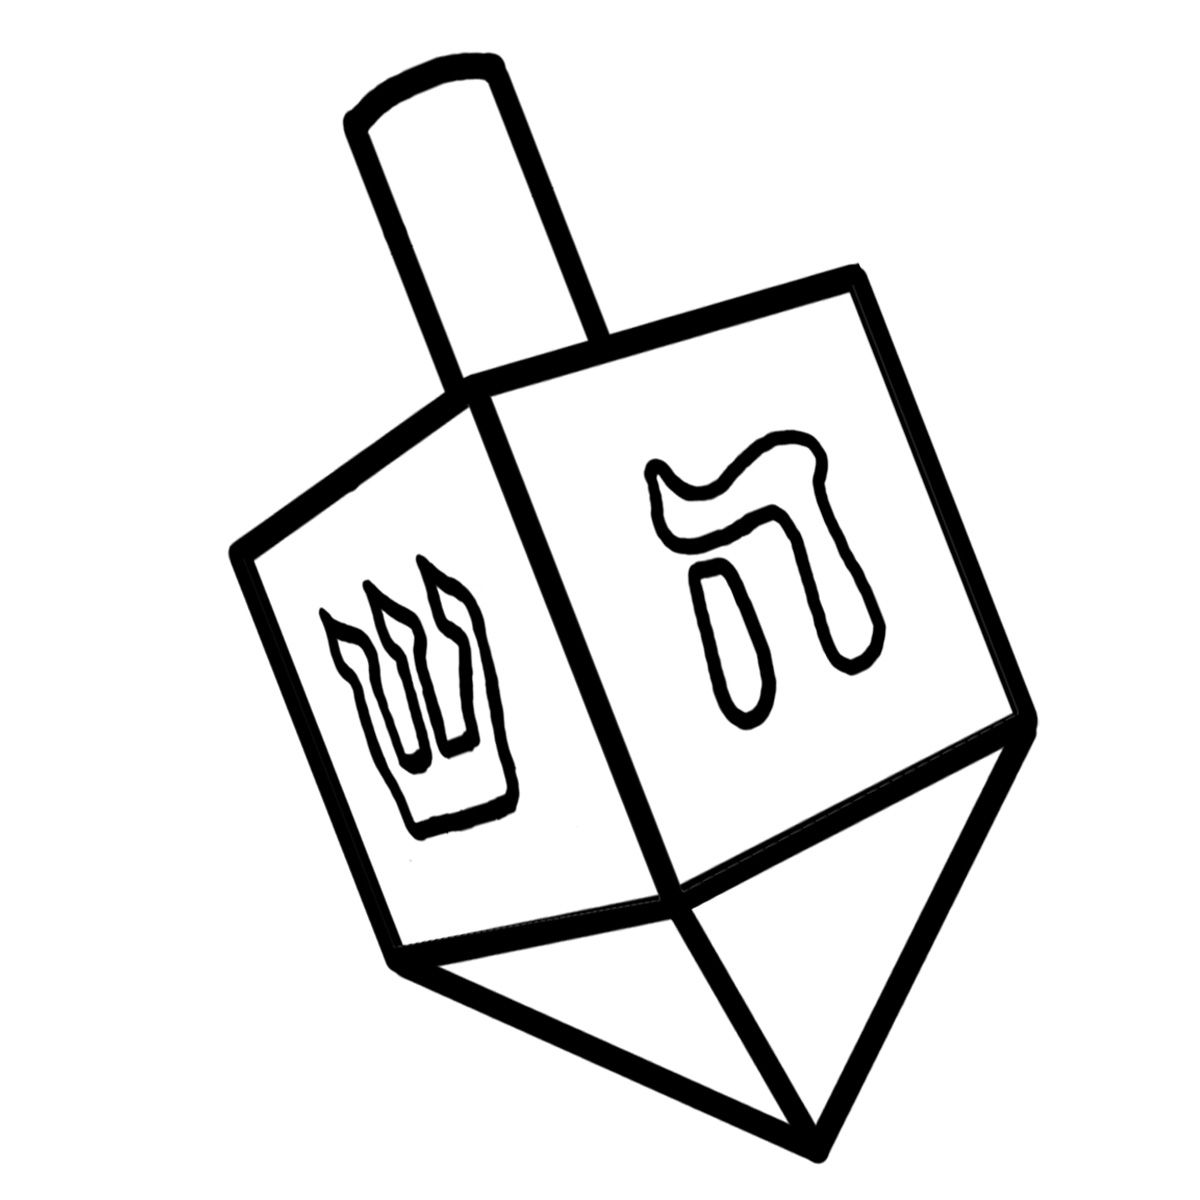 Dreidel clipart free freeuse stock Dreidel Drawing at GetDrawings.com | Free for personal use Dreidel ... freeuse stock